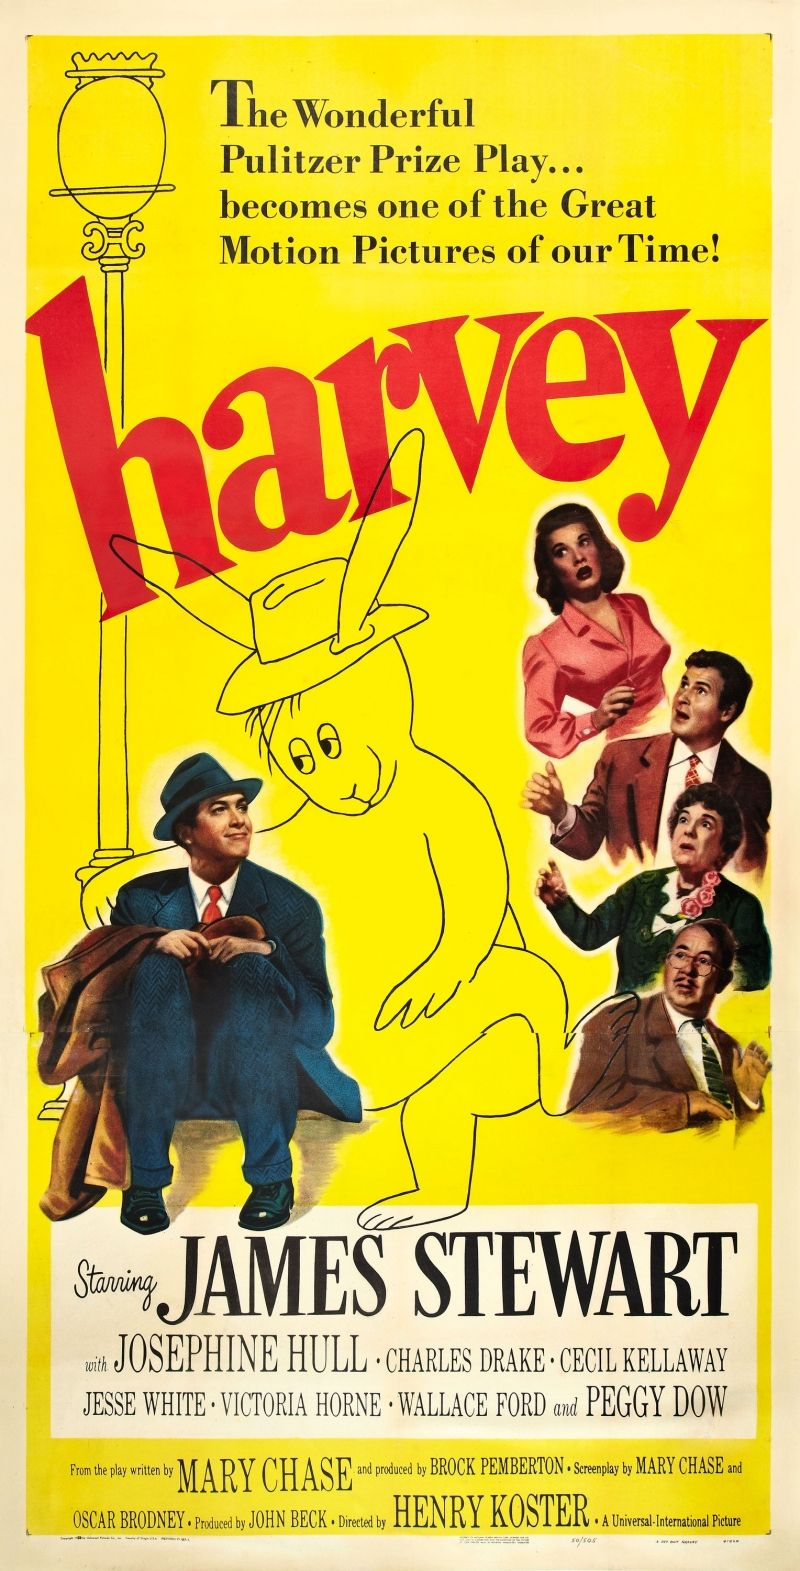 Harvey movie poster 11x17 in jimmy stewart rabbit 27x43 cm elwood p ...